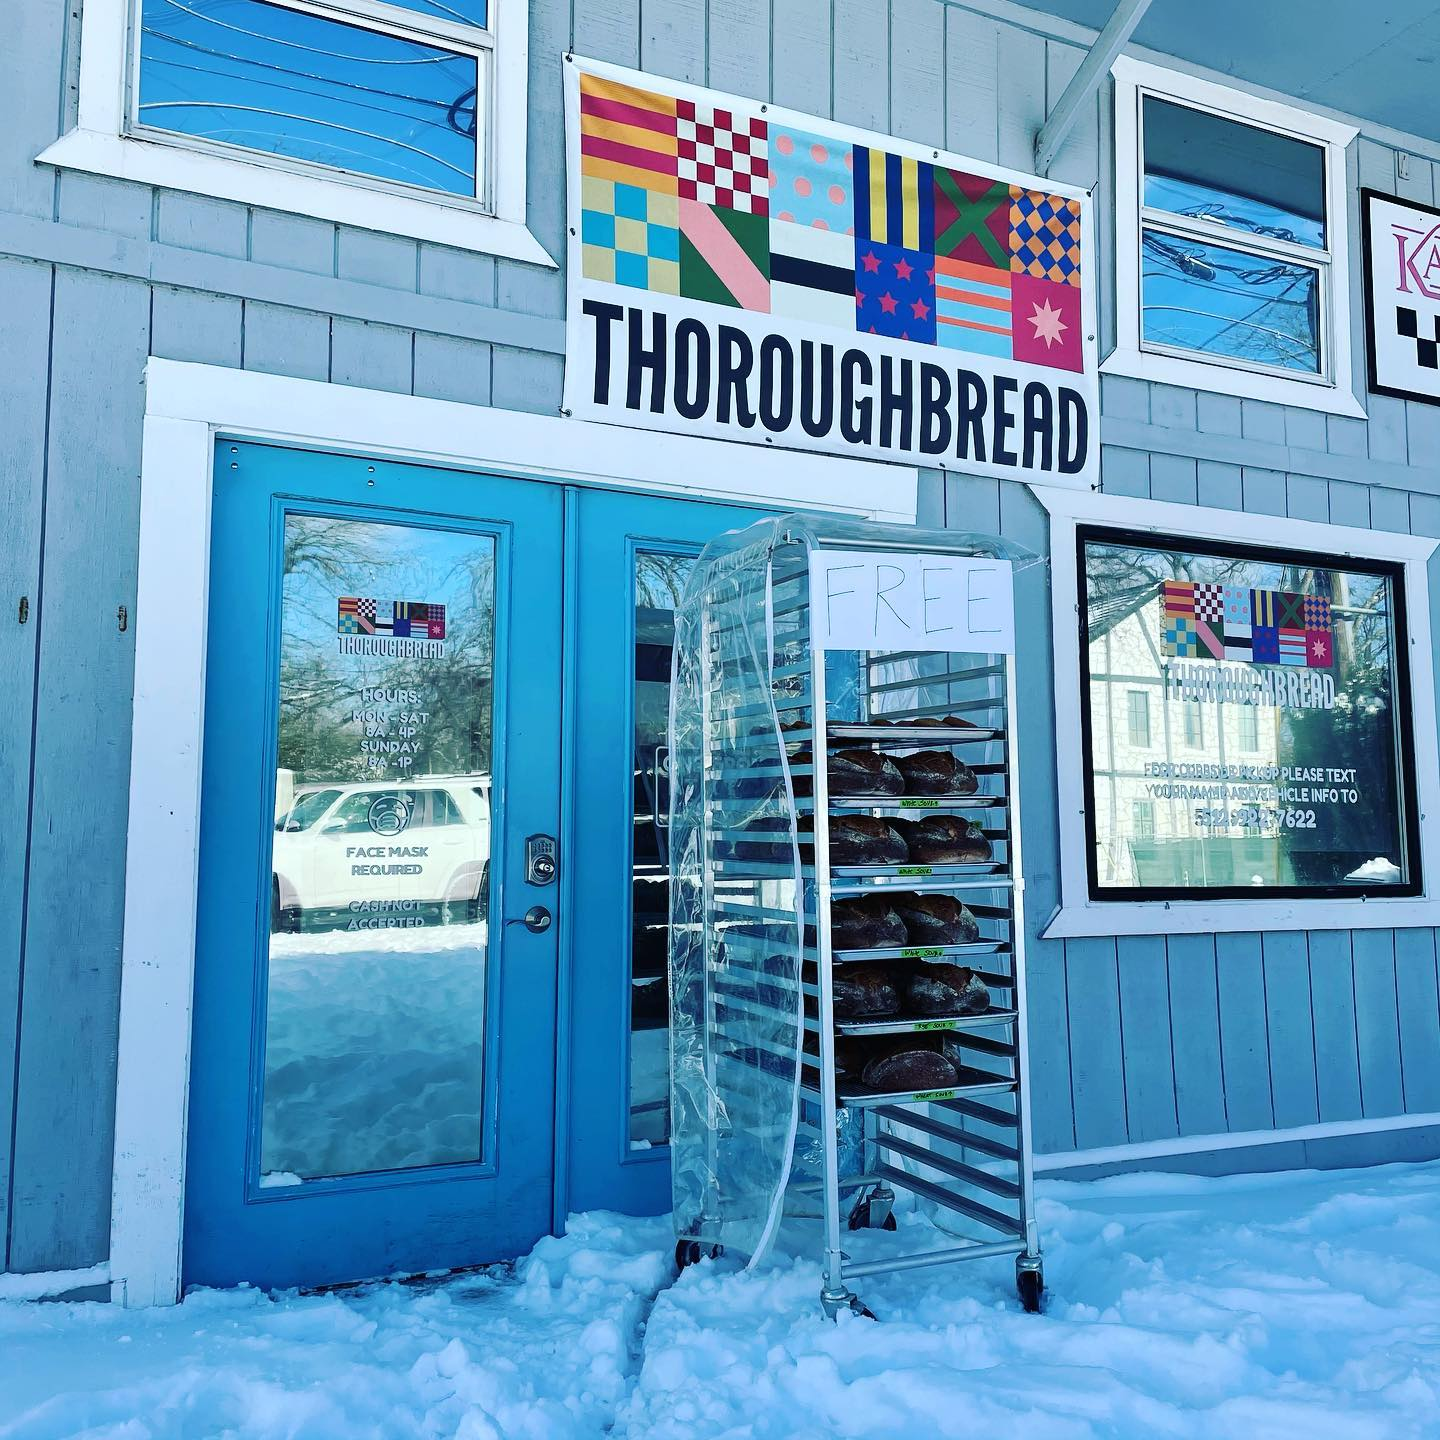 ThoroughBread left a rack of baked goods outside of its bakery